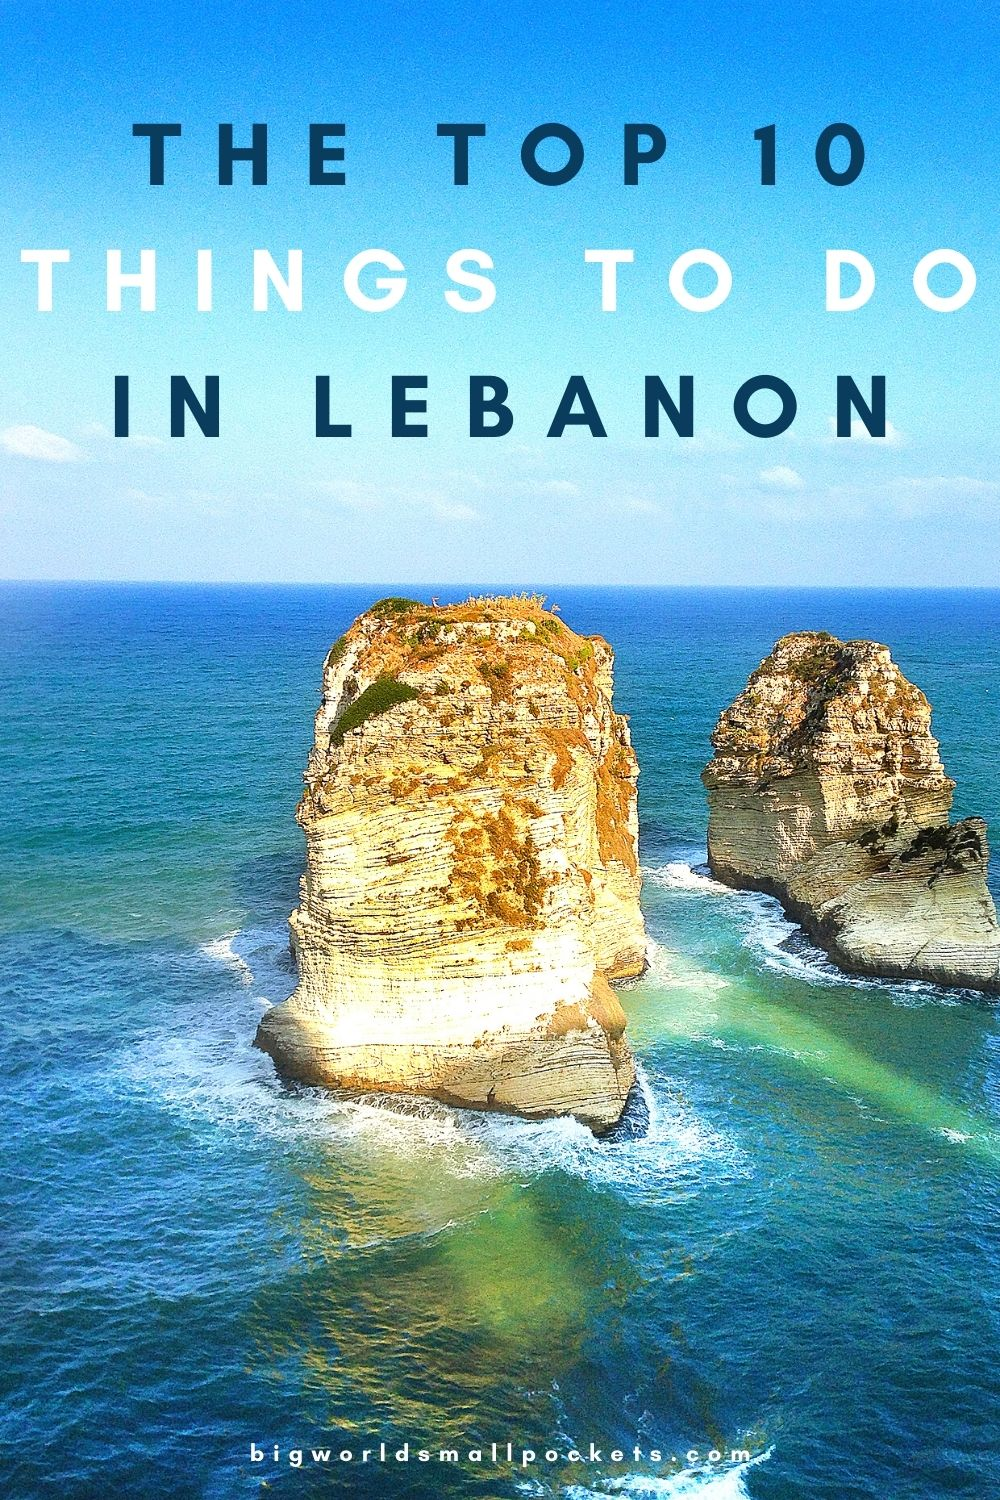 Top 10 Things To Do in Lebanon